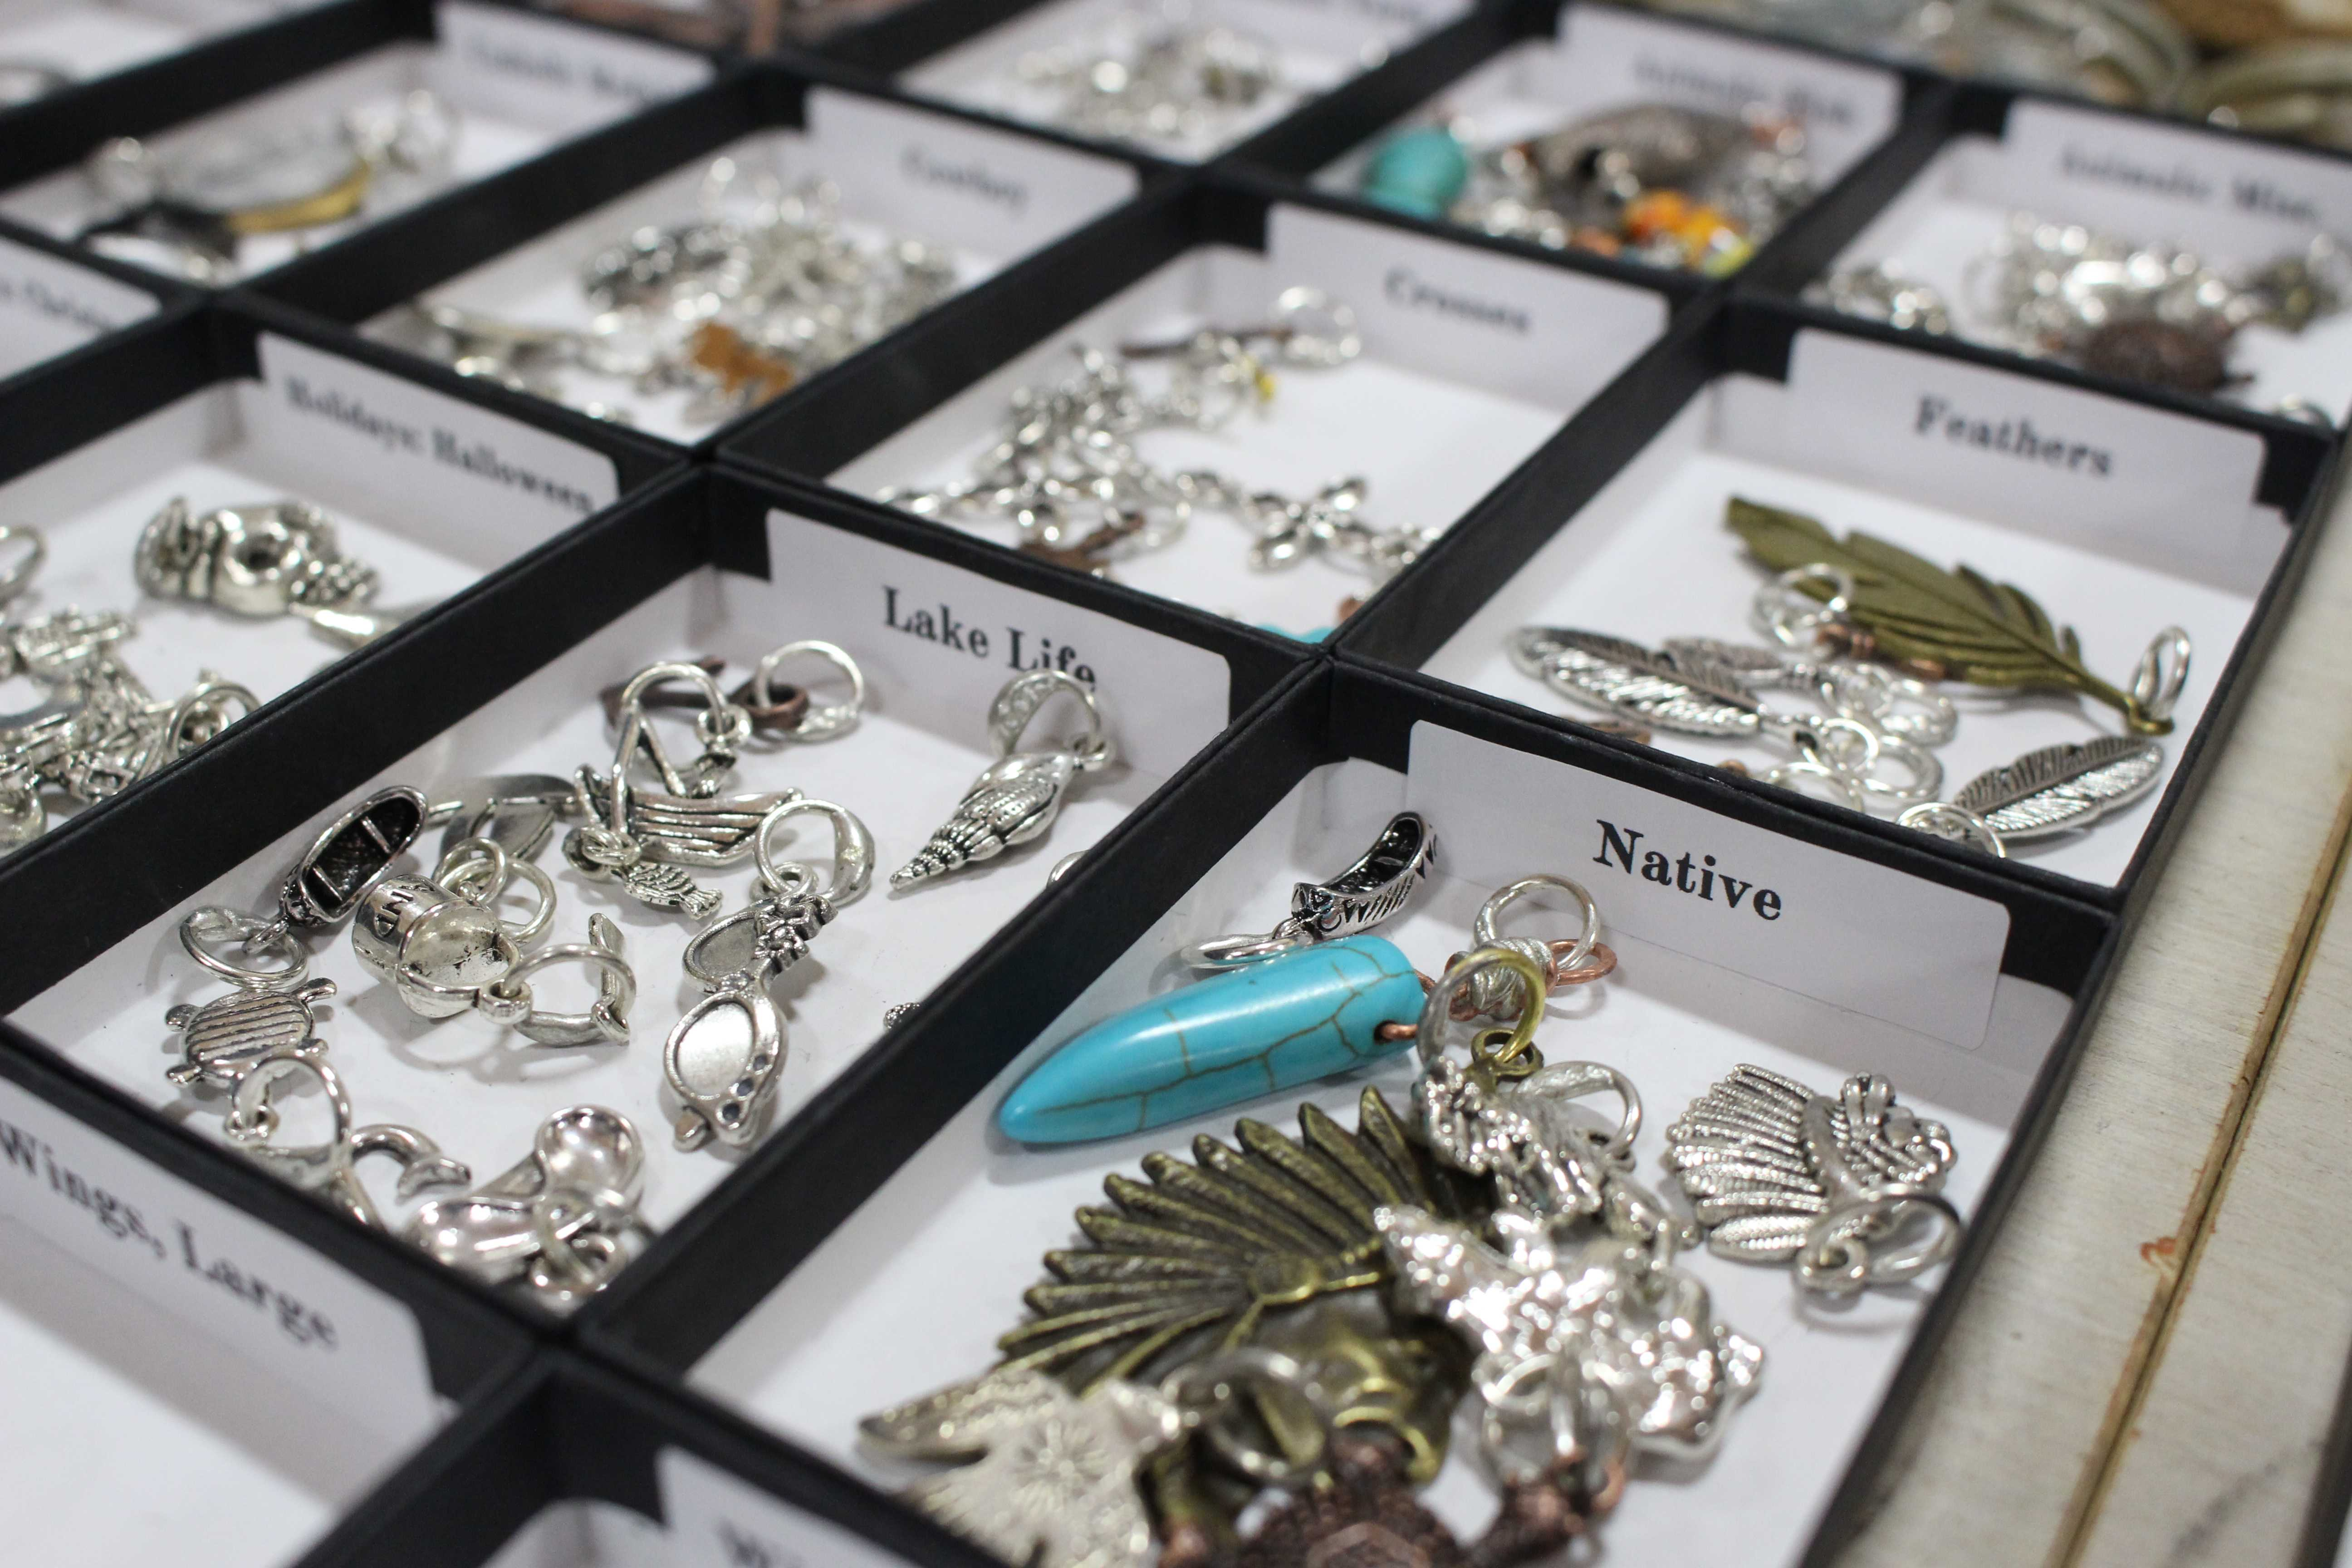 KELLY MITCHELL Shelleen Weeks, owner of Do-OverS!, makes homemade charms from recycled metals and sold them during the Brookings Pop-Up Market Friday, Feb. 2 and Saturday, Feb. 3 at the Brookings Recreation Center. The Brookings Pop-Up Market hosted several booths for entrepeneurs from the community.